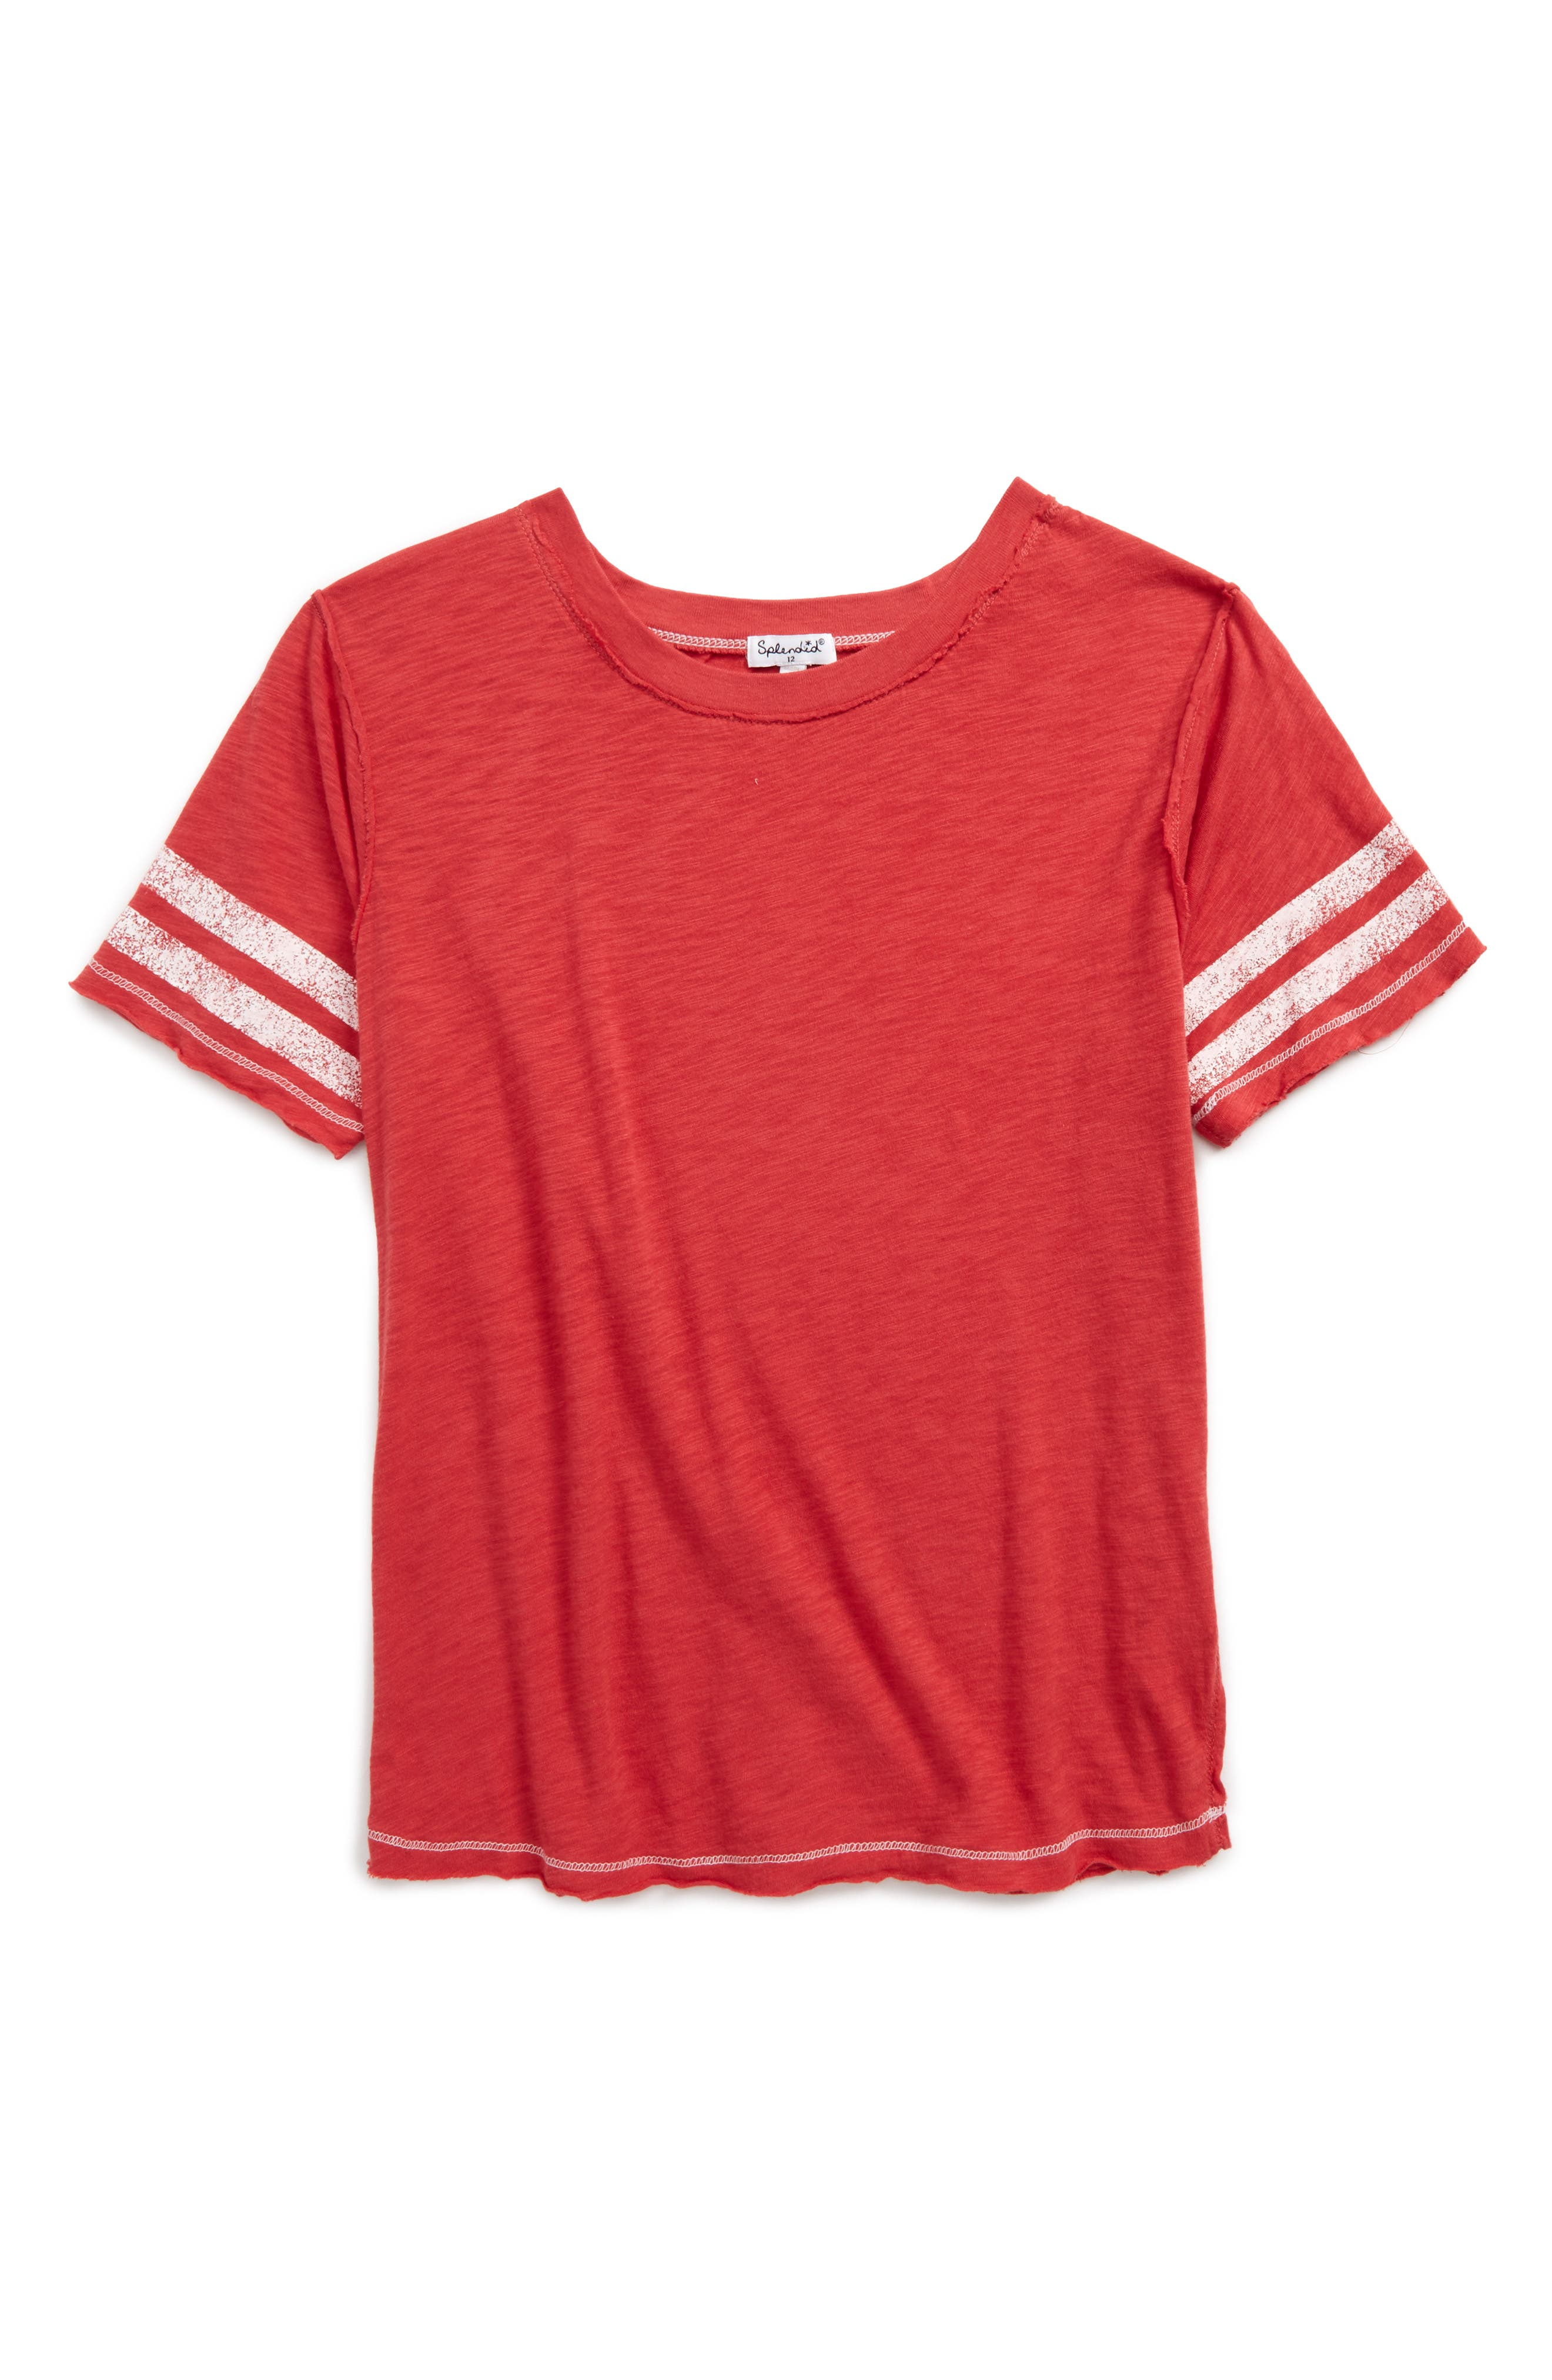 Splendid Football Tee (Big Girls)